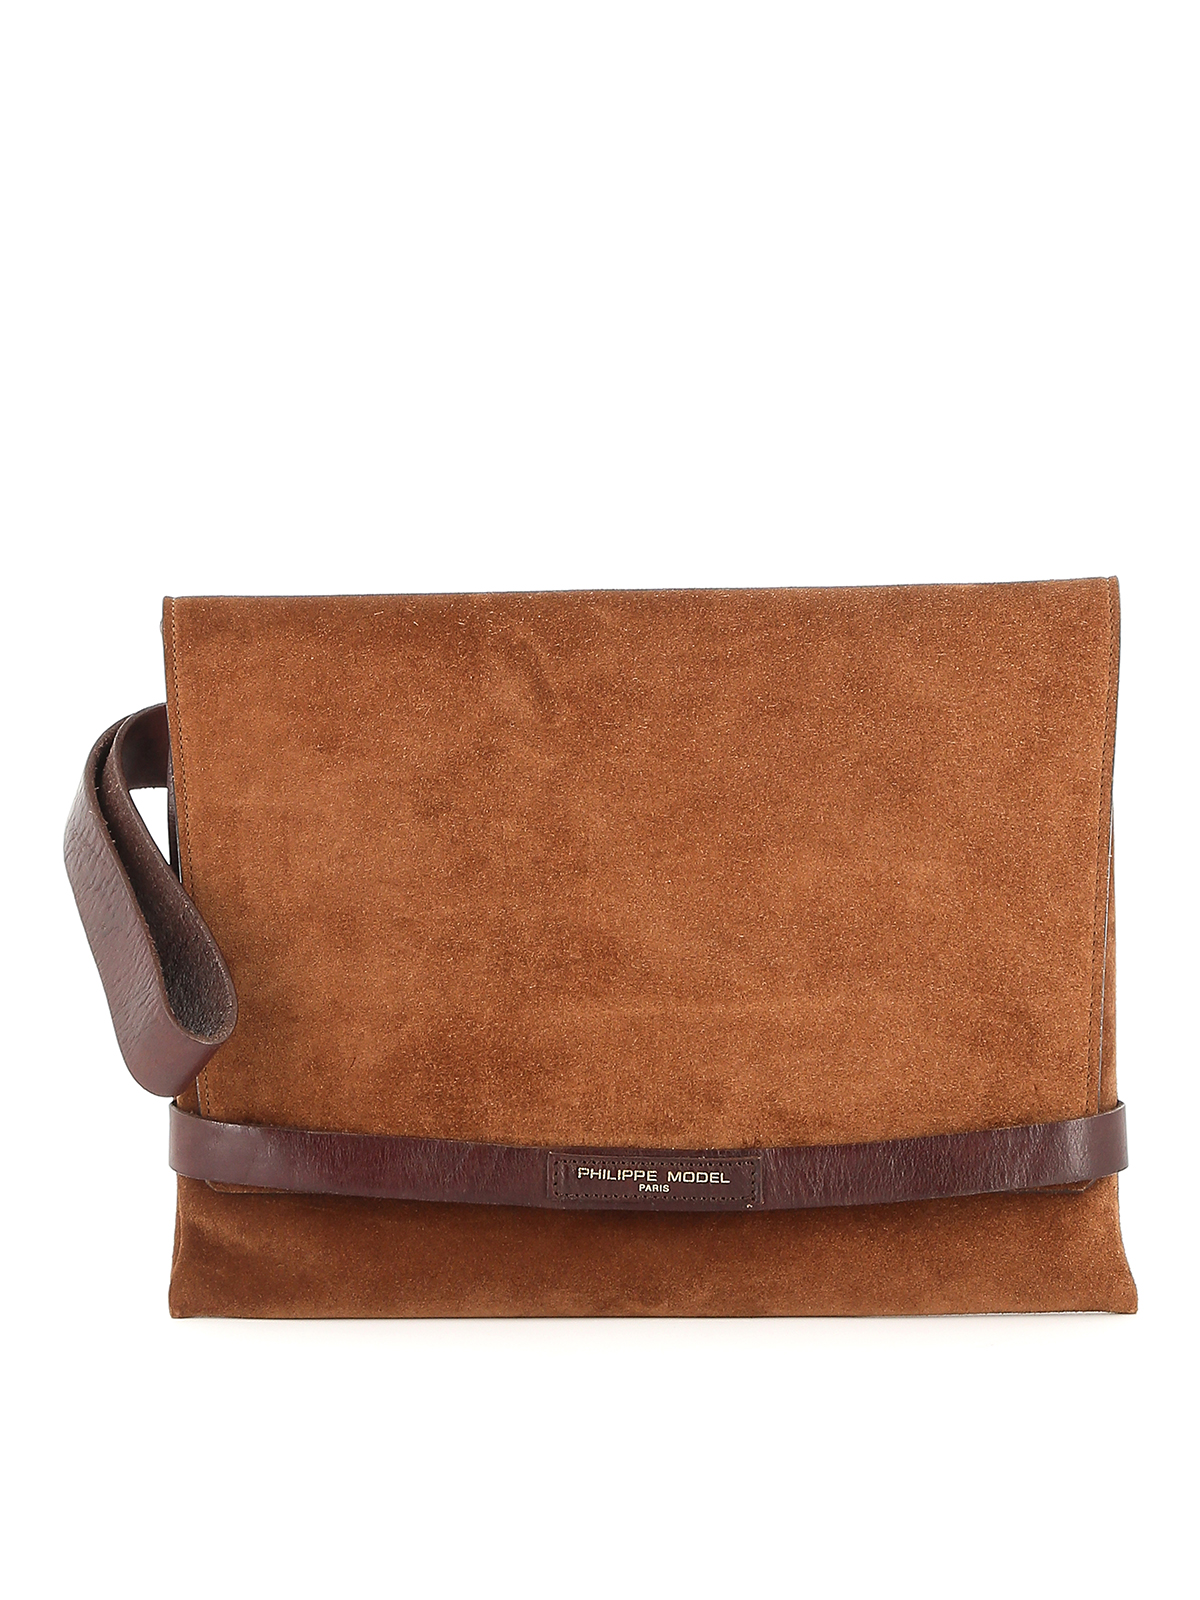 Philippe Model Simone Suede Clutch In Light Brown